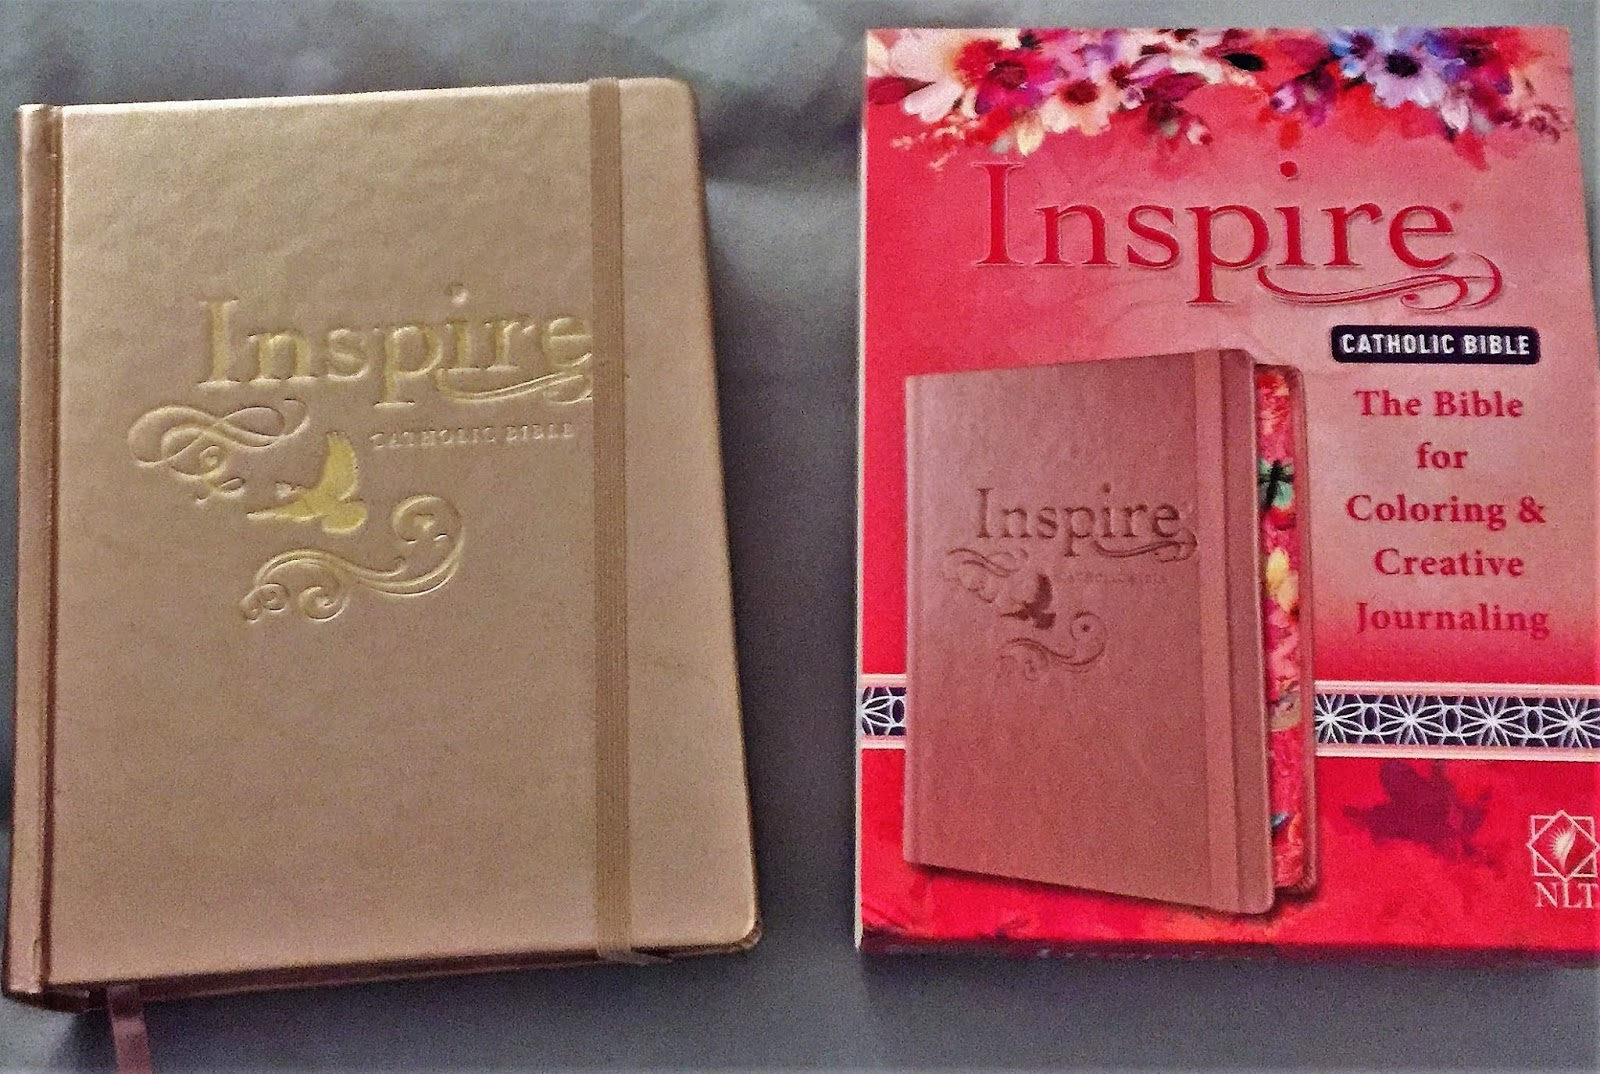 Reading With Wrin : Inspire Catholic Bible | Review | Blogmas